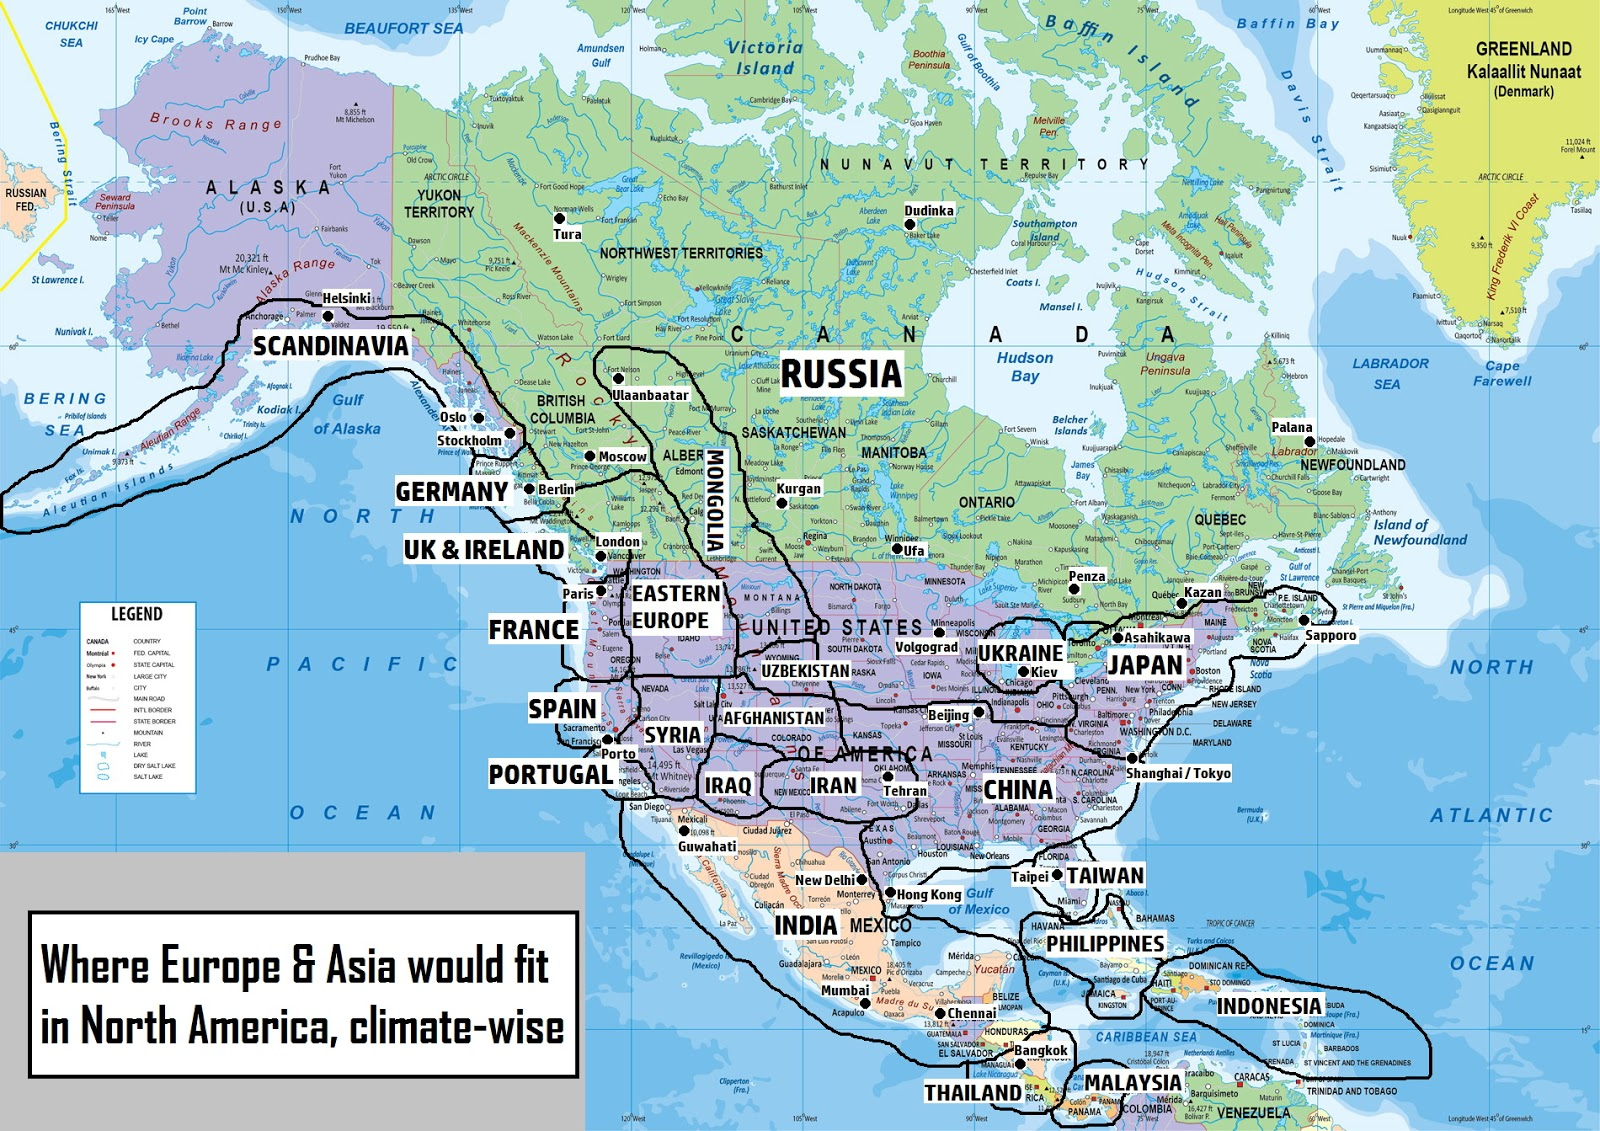 Where Europe and Asia would fit in North America, climate-wise